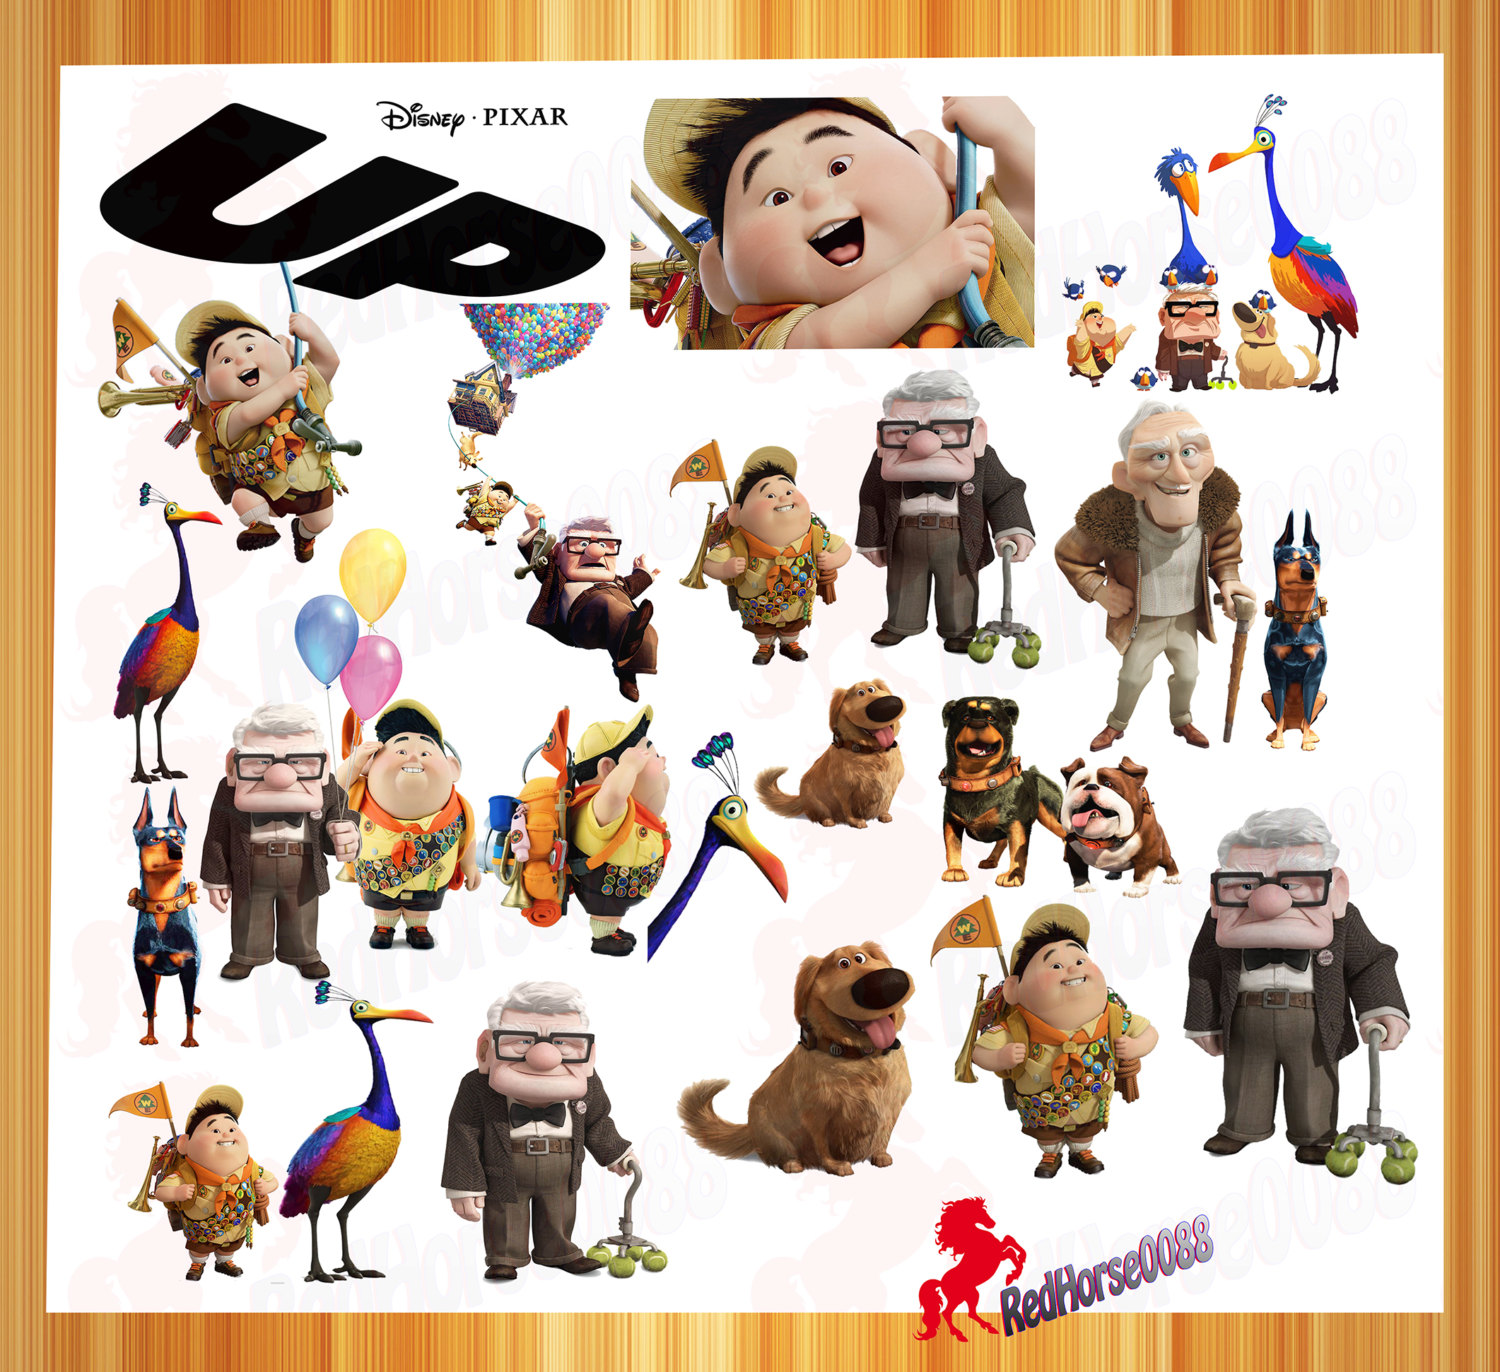 20 Disney Pixar Up Characters Png Images Files For By Redhorse0088